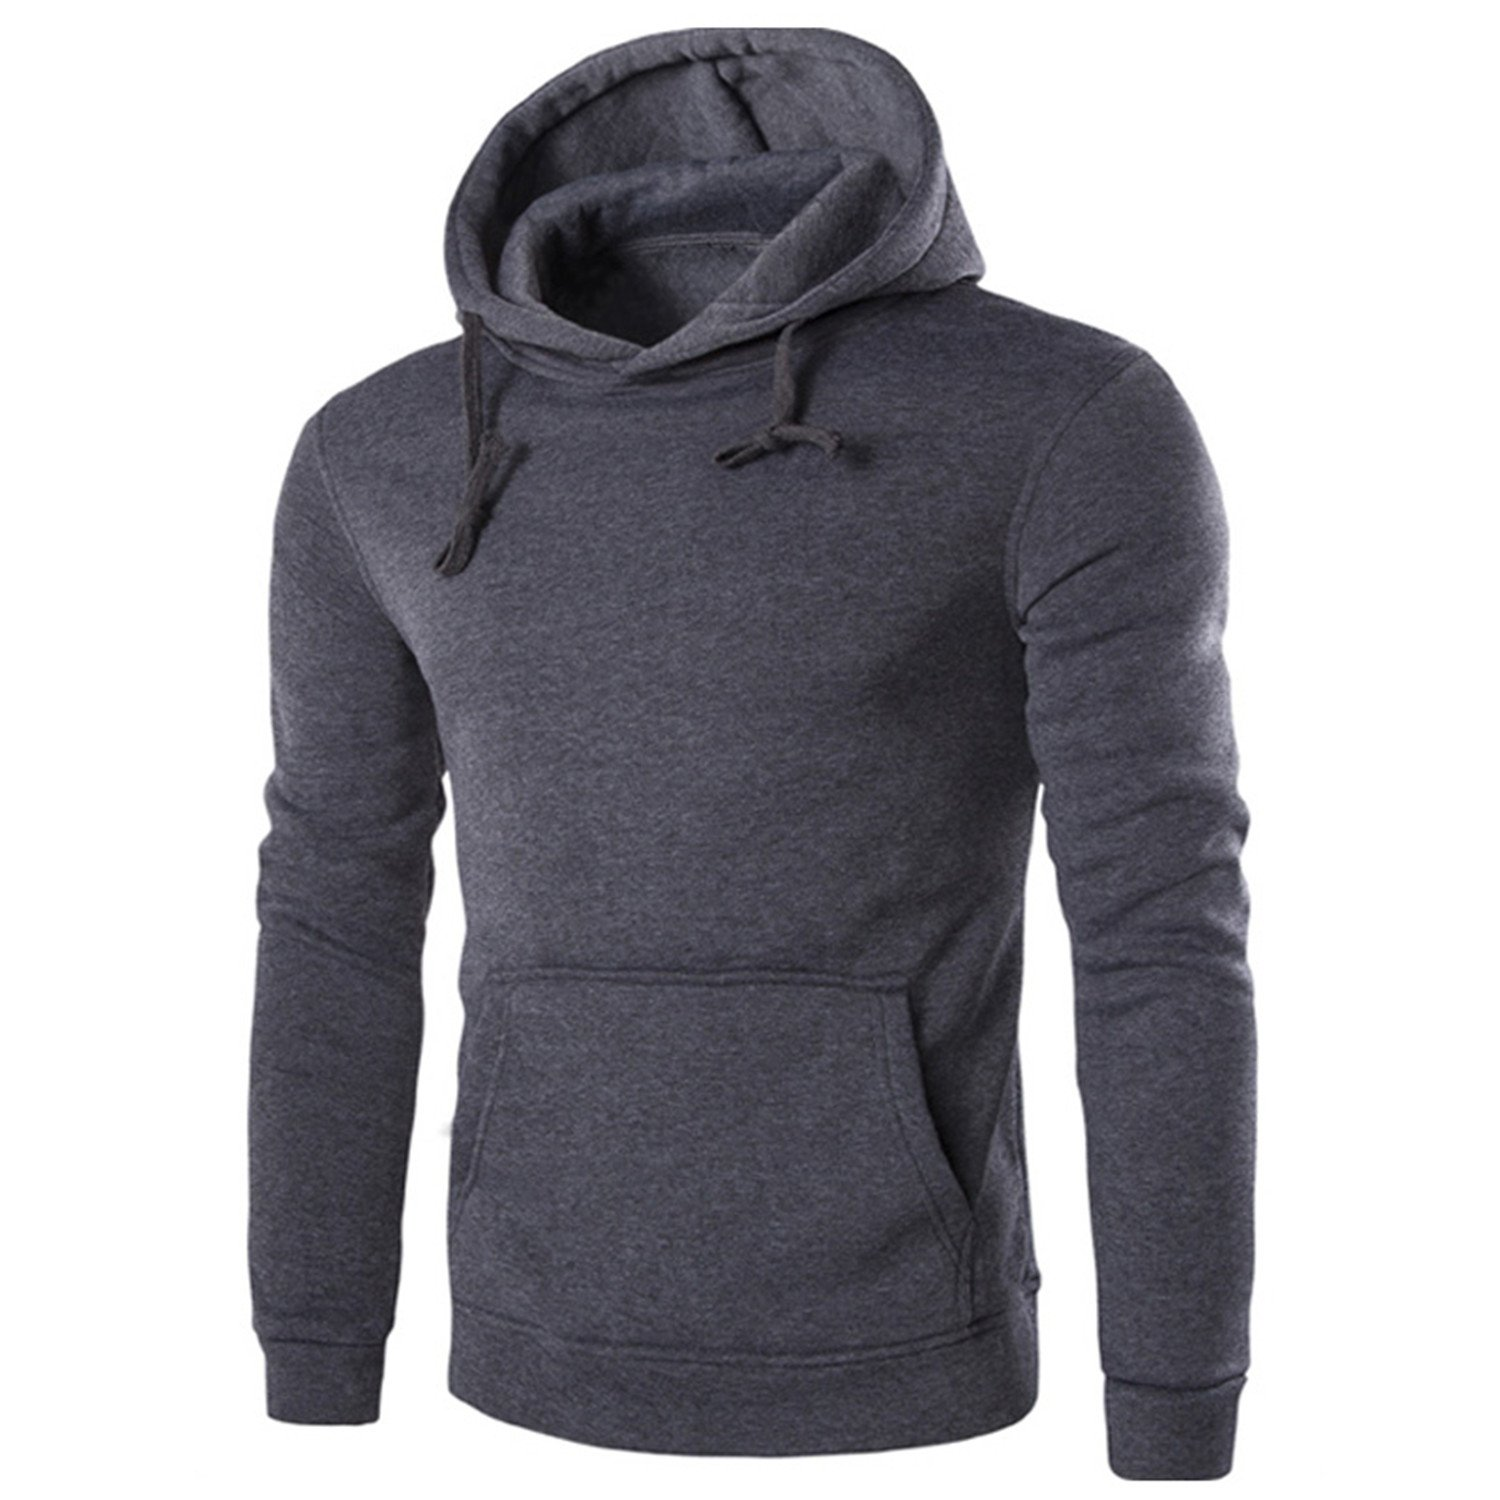 Joshua Sanchez Men Casual Sweatshirt 2017 New Style Urban Fashion Pocket Hoodie at Amazon Mens Clothing store: